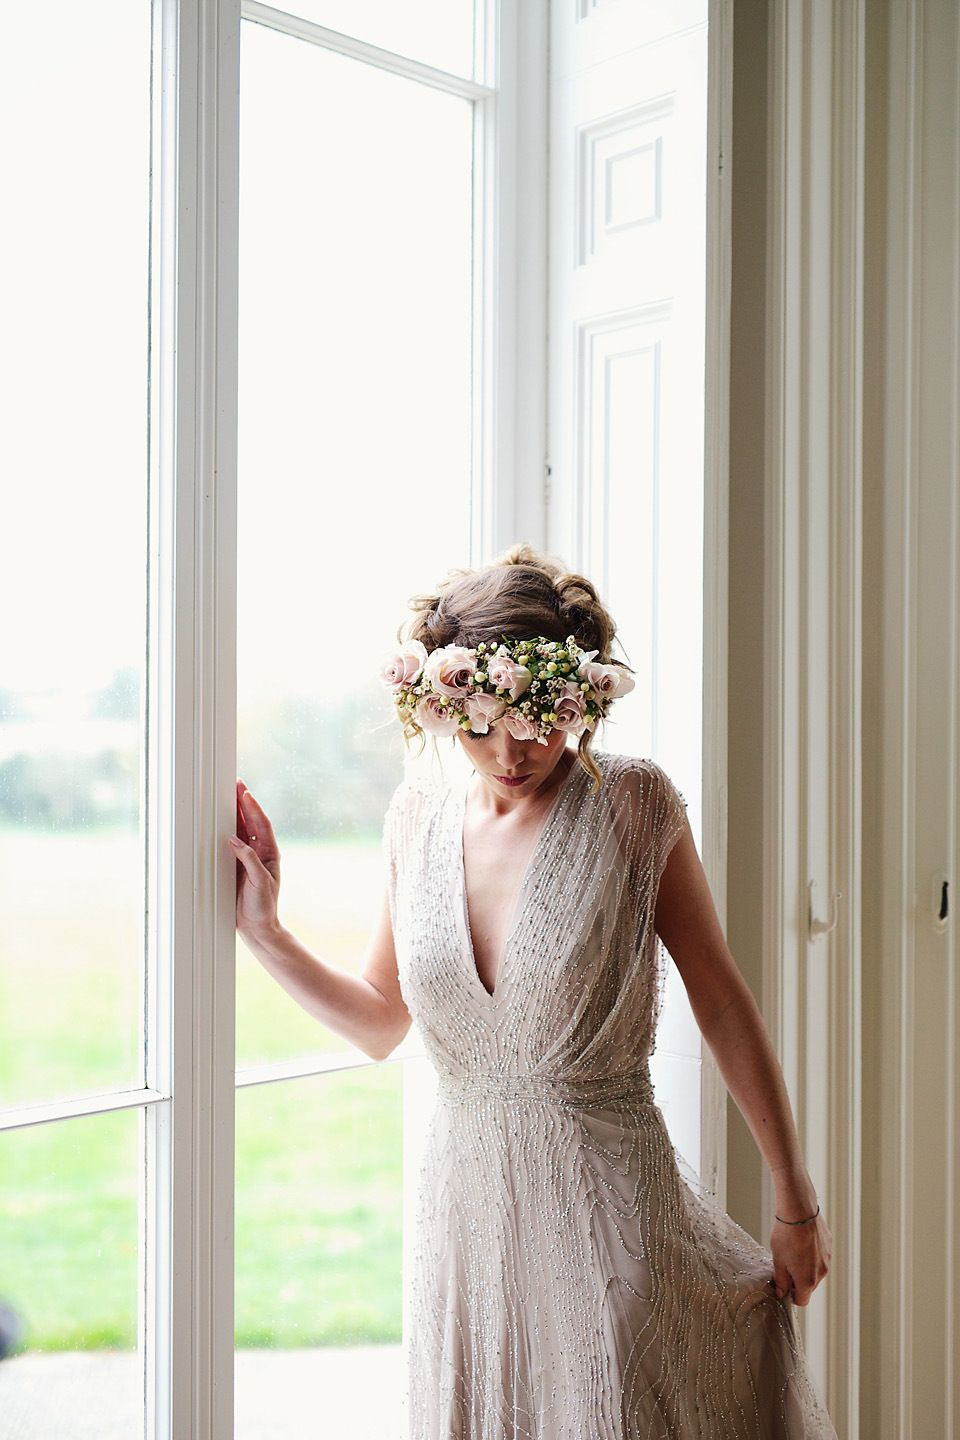 Curious and Quirky Meets Glamorous and Elegant Wedding Day Style ...